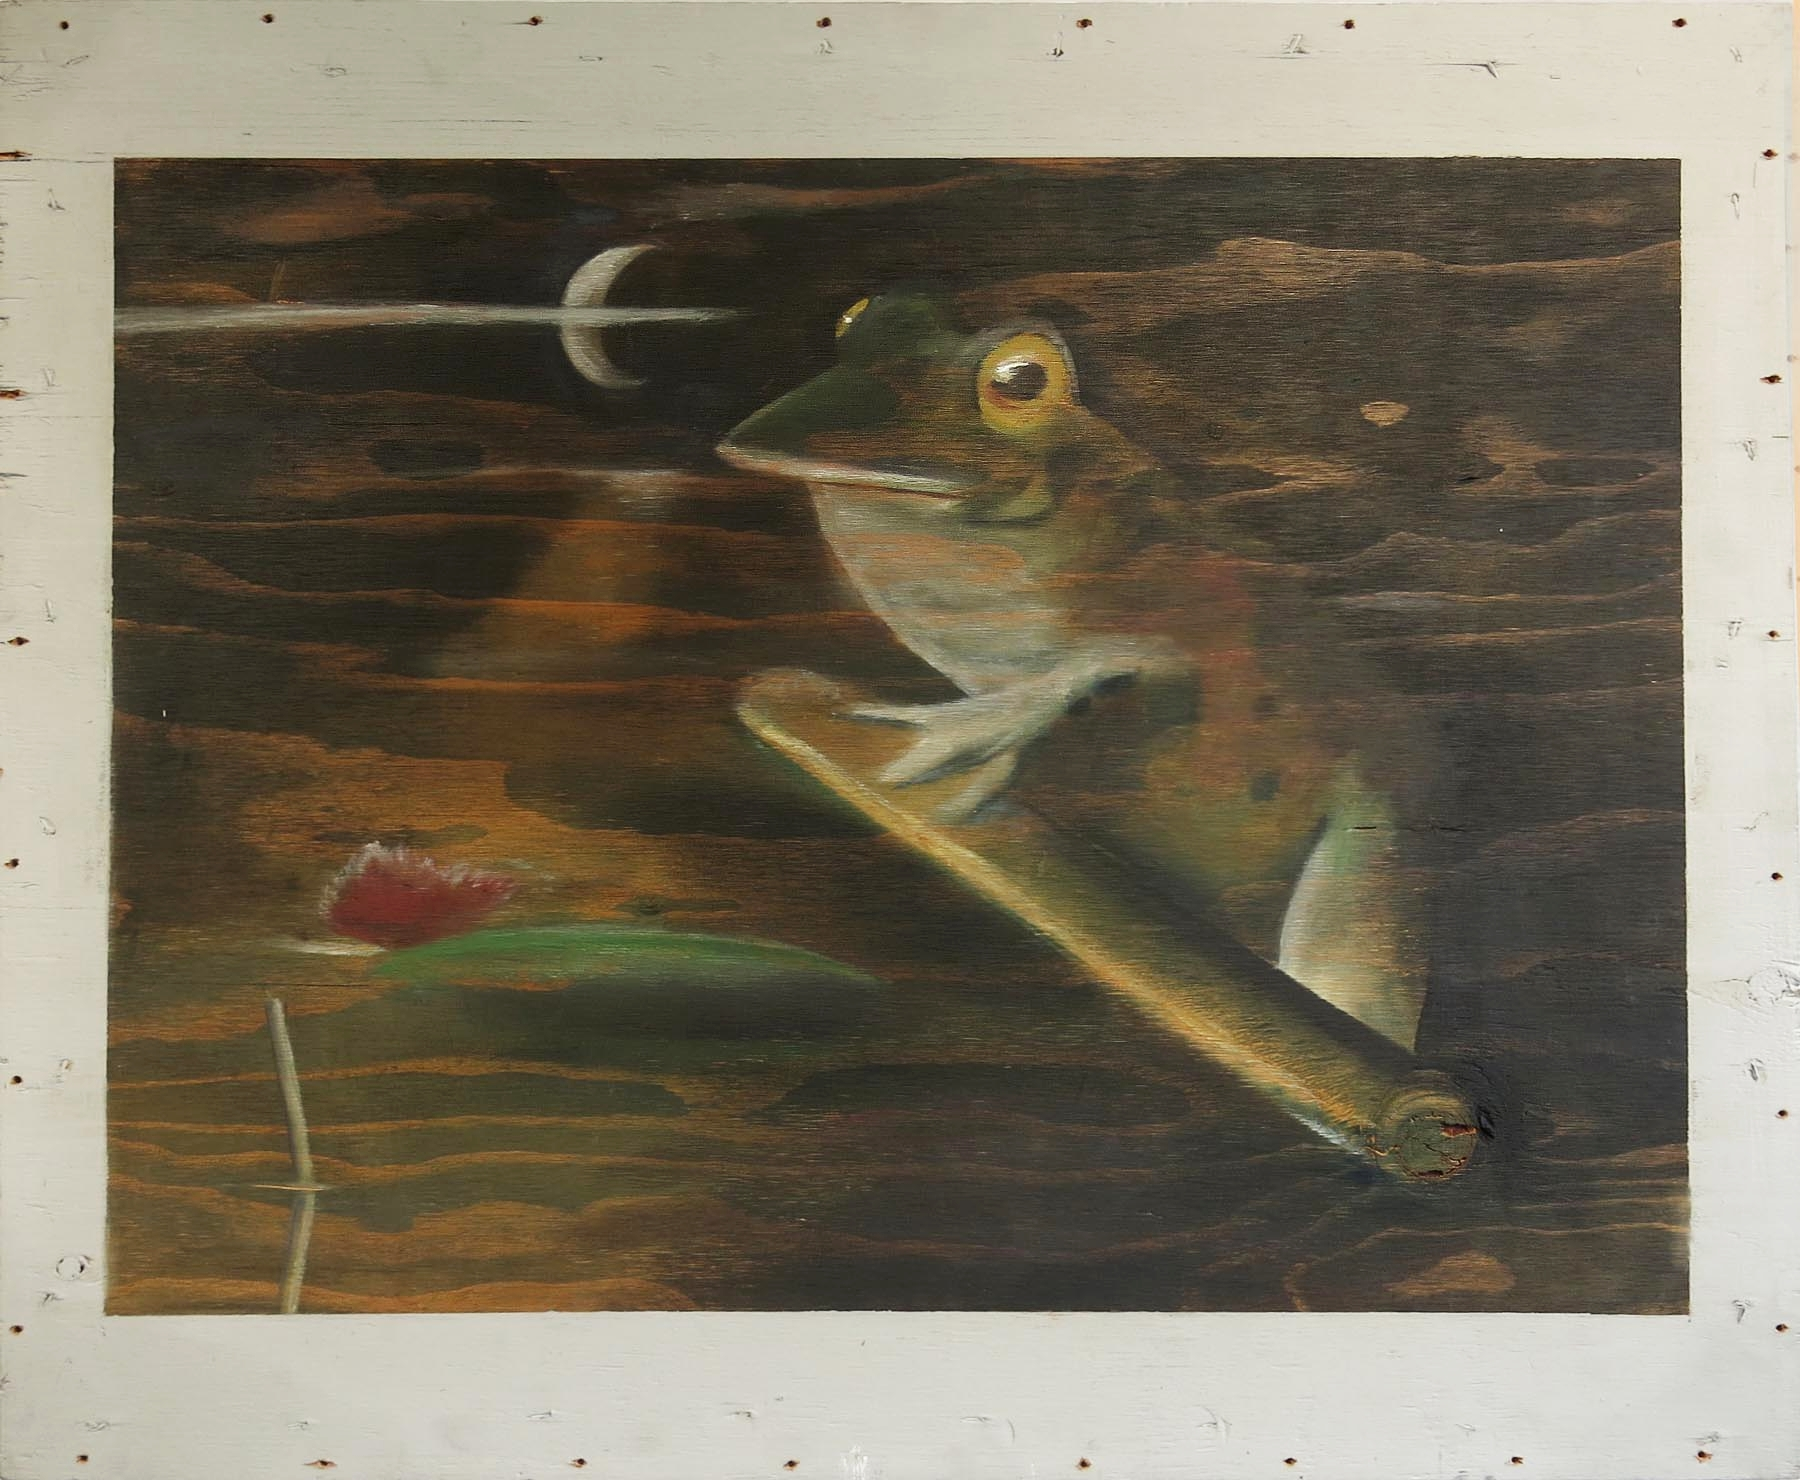 Robert Helm,  Untitled (frog),  1984, oil on wood, 29.5h x 36w in.